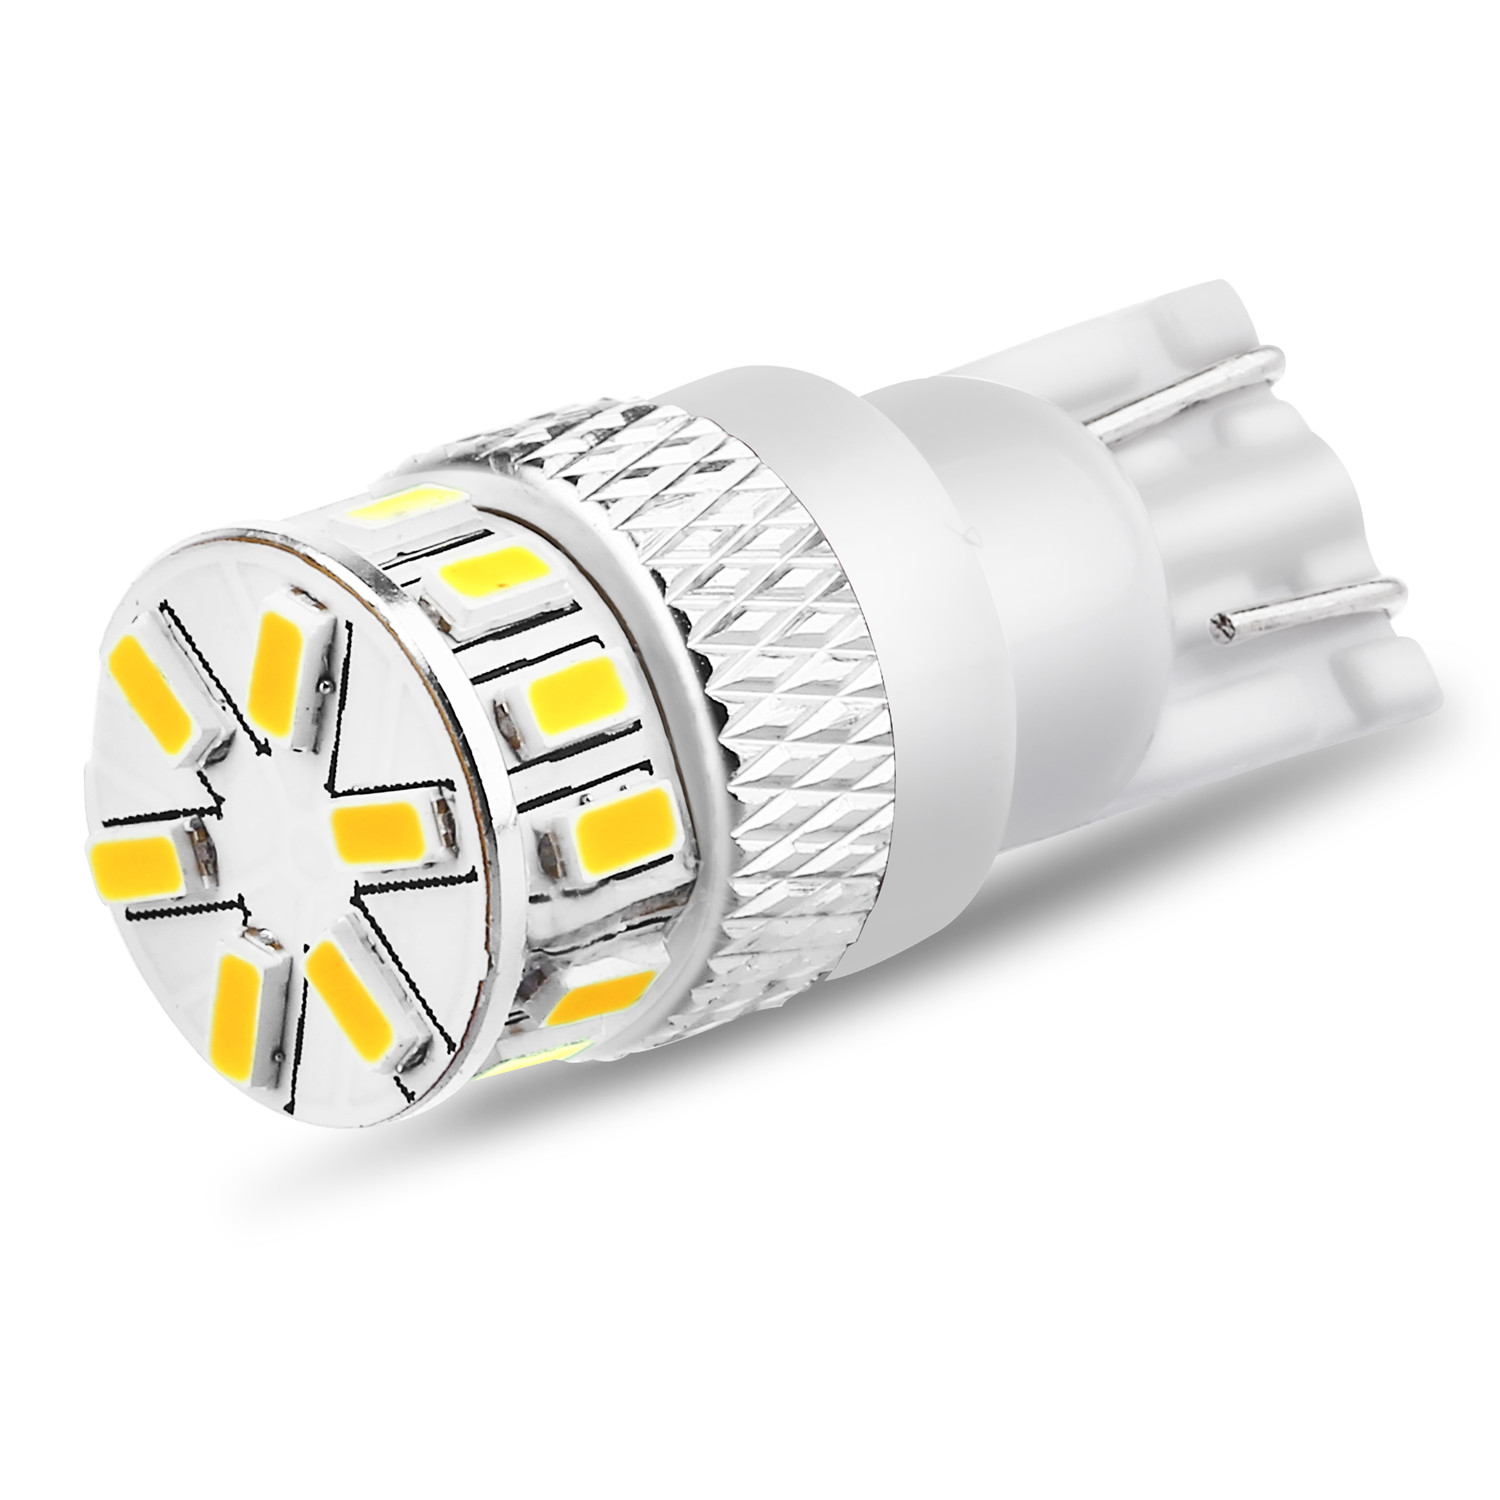 2019 Jeep Wrangler LED Dome Light Bulb 12V Replacement